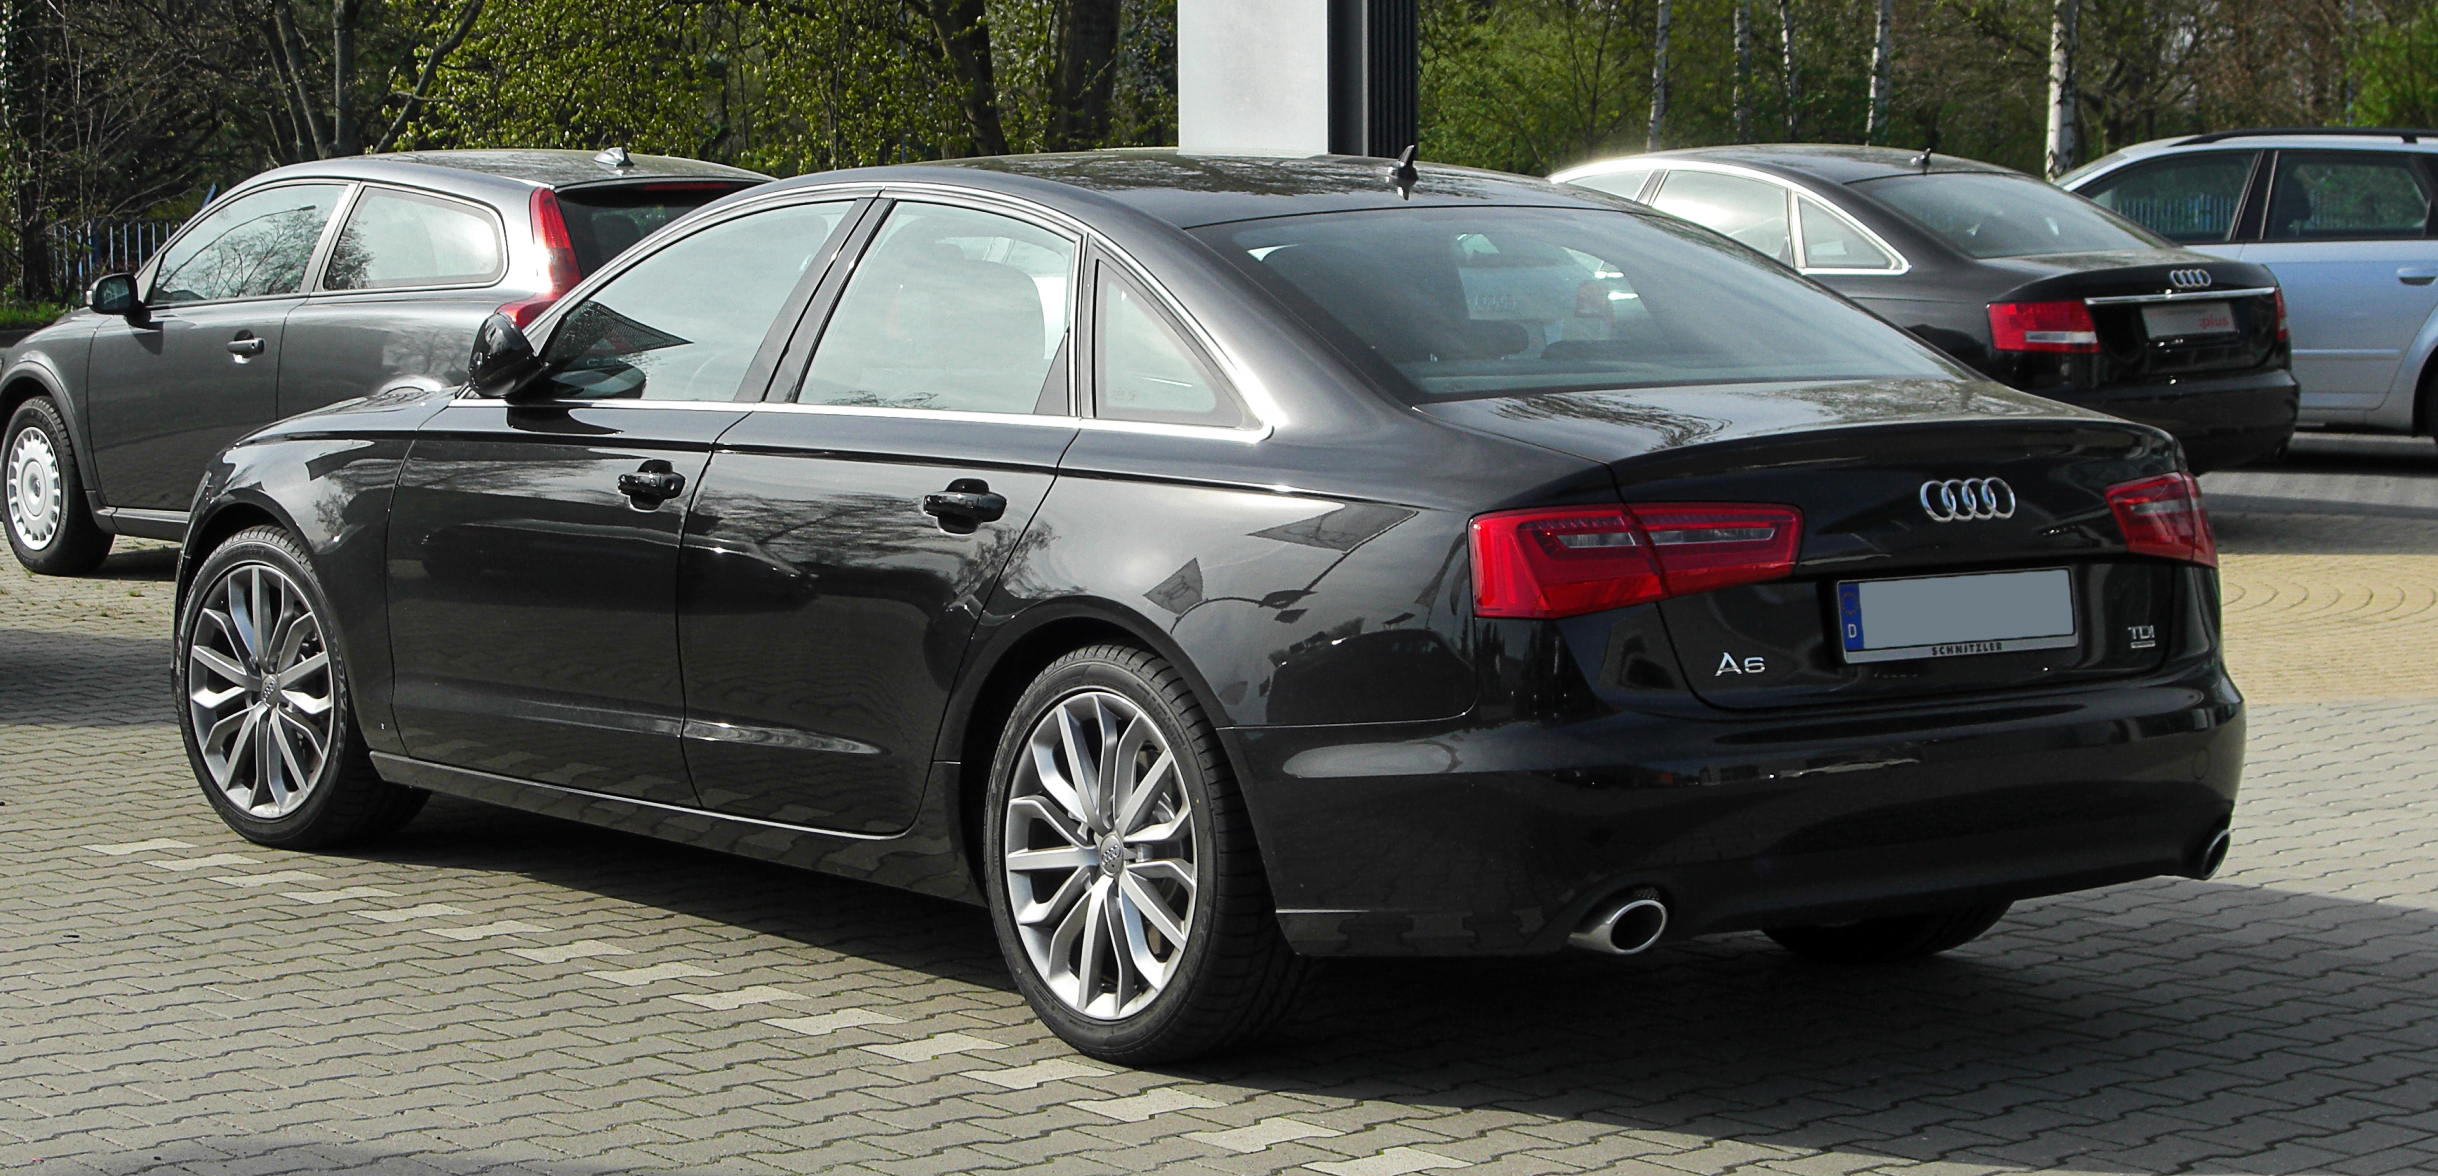 file audi a6 3 0 tdi quattro c7 heckansicht 2 april. Black Bedroom Furniture Sets. Home Design Ideas